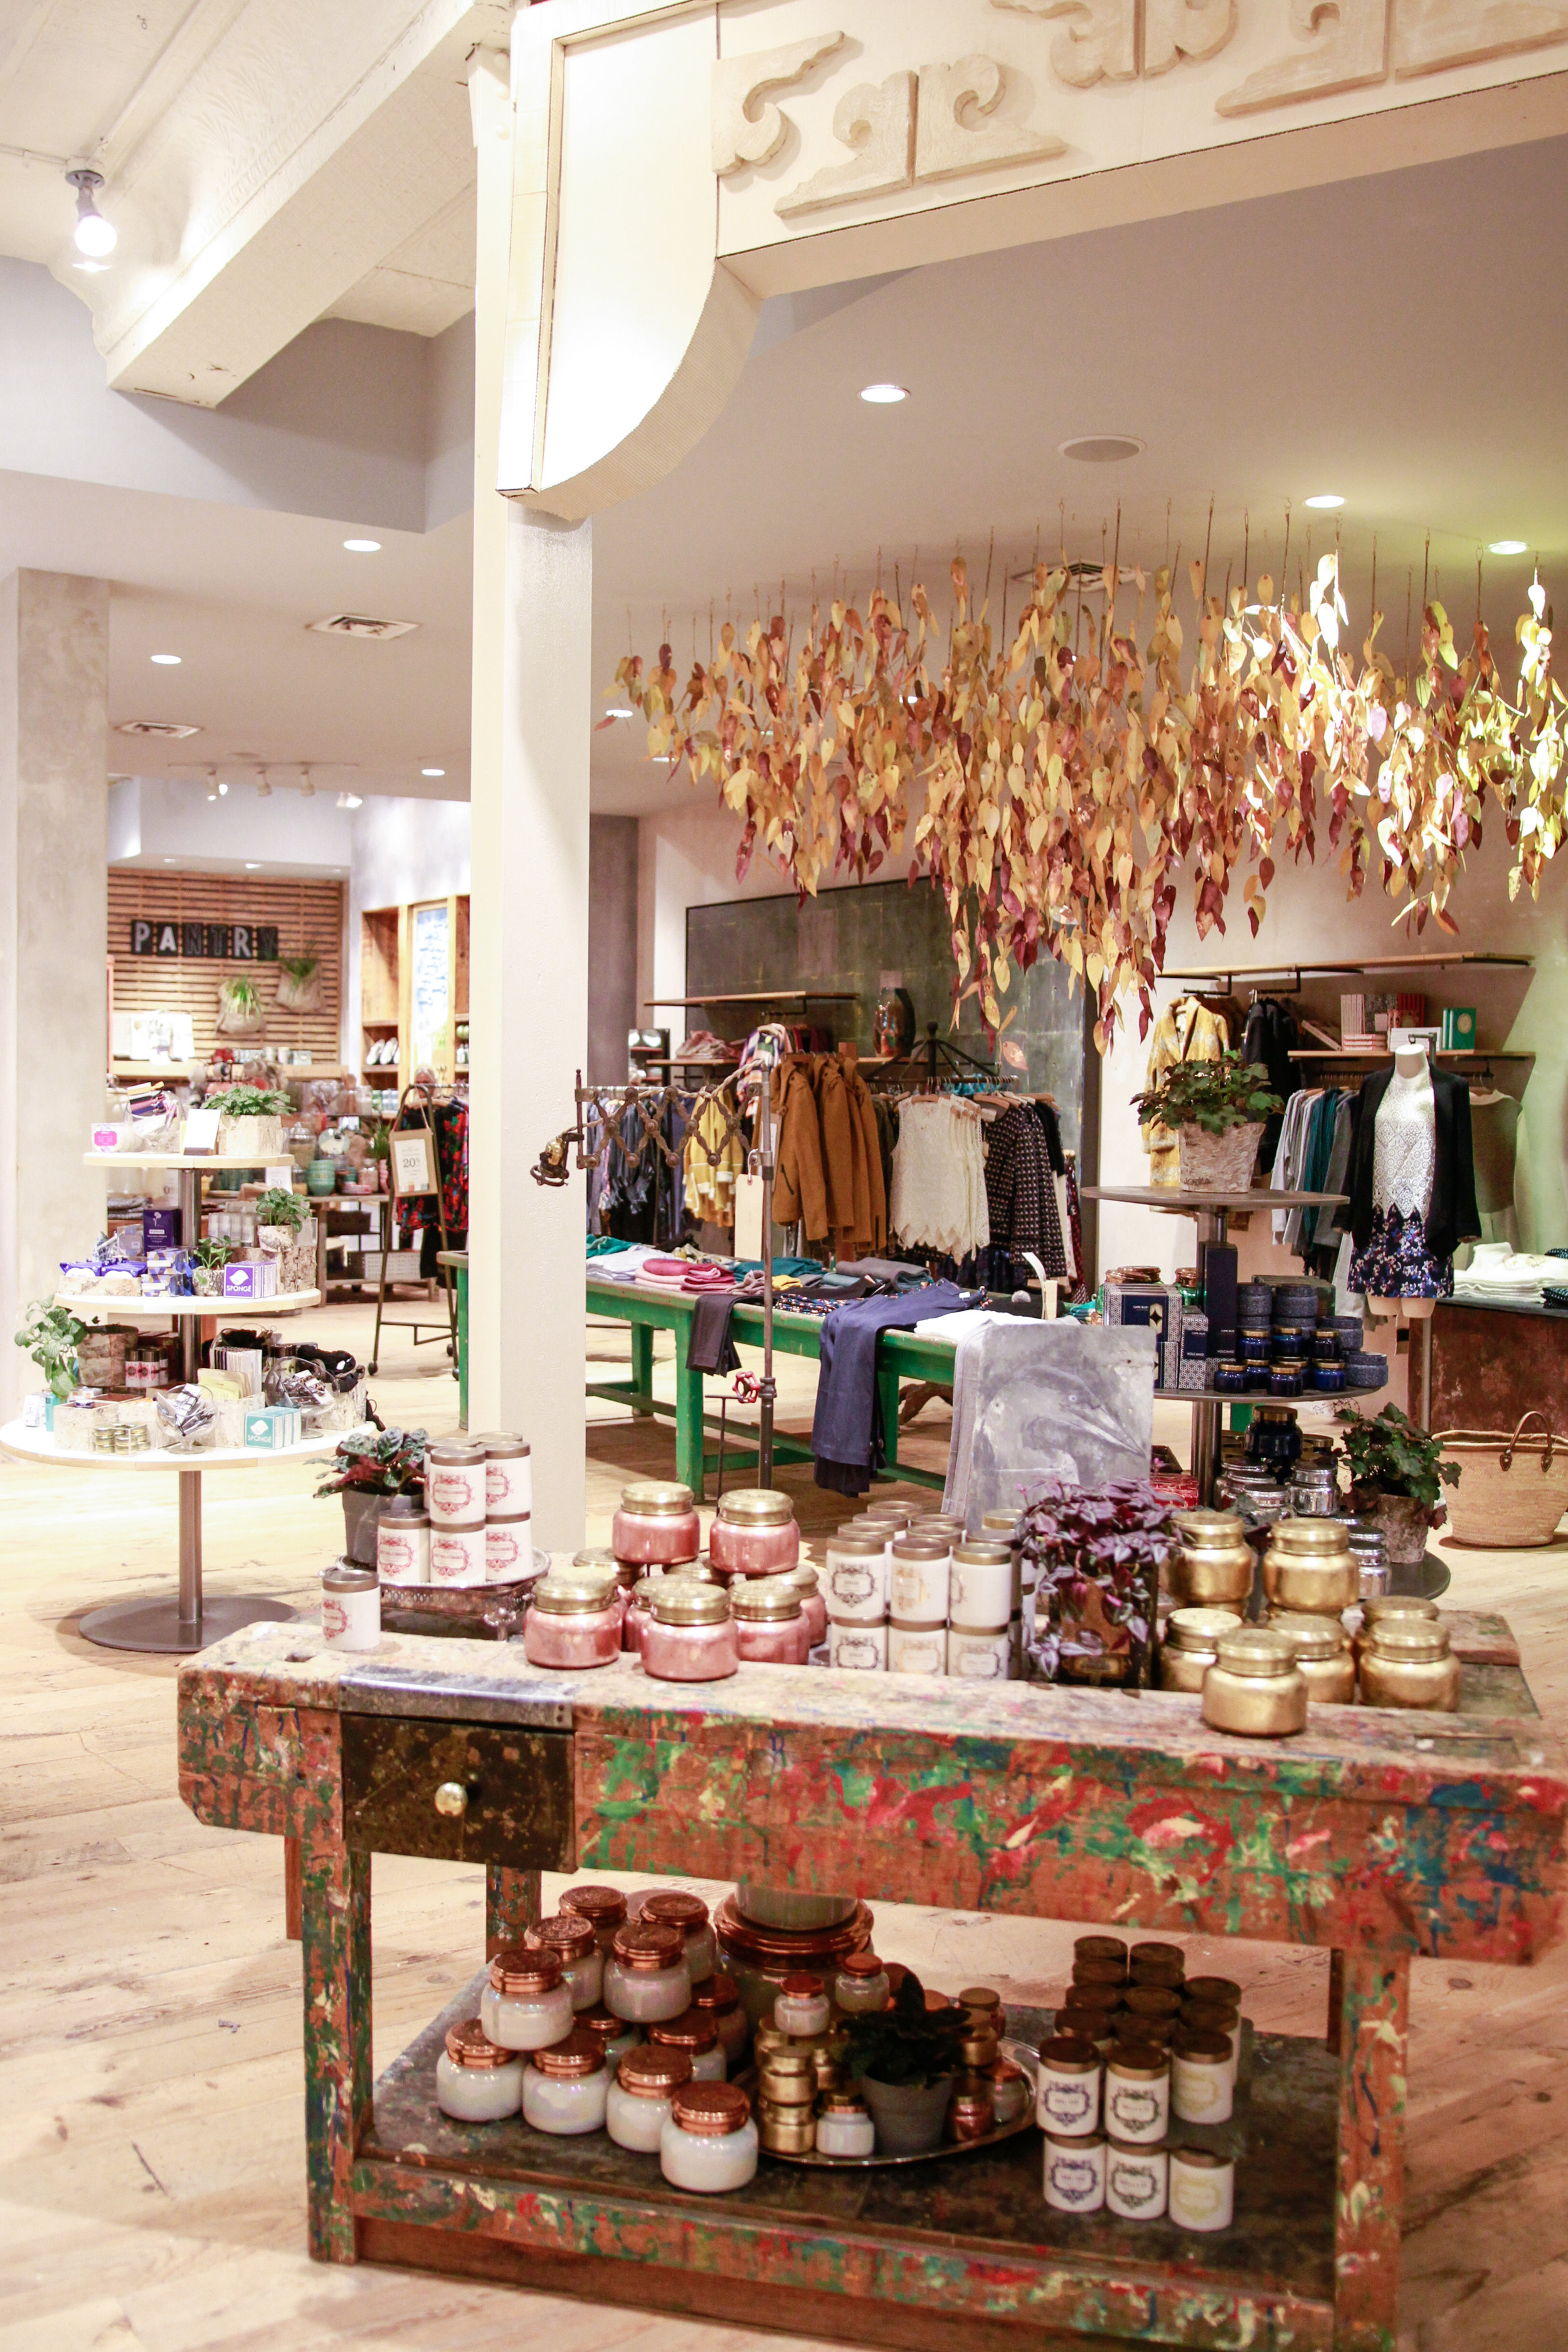 Anthropologie | Old Town Alexandria, Virginia | Maral Noori Photography | Fall Travel Blogger and Lifestyle Photographer